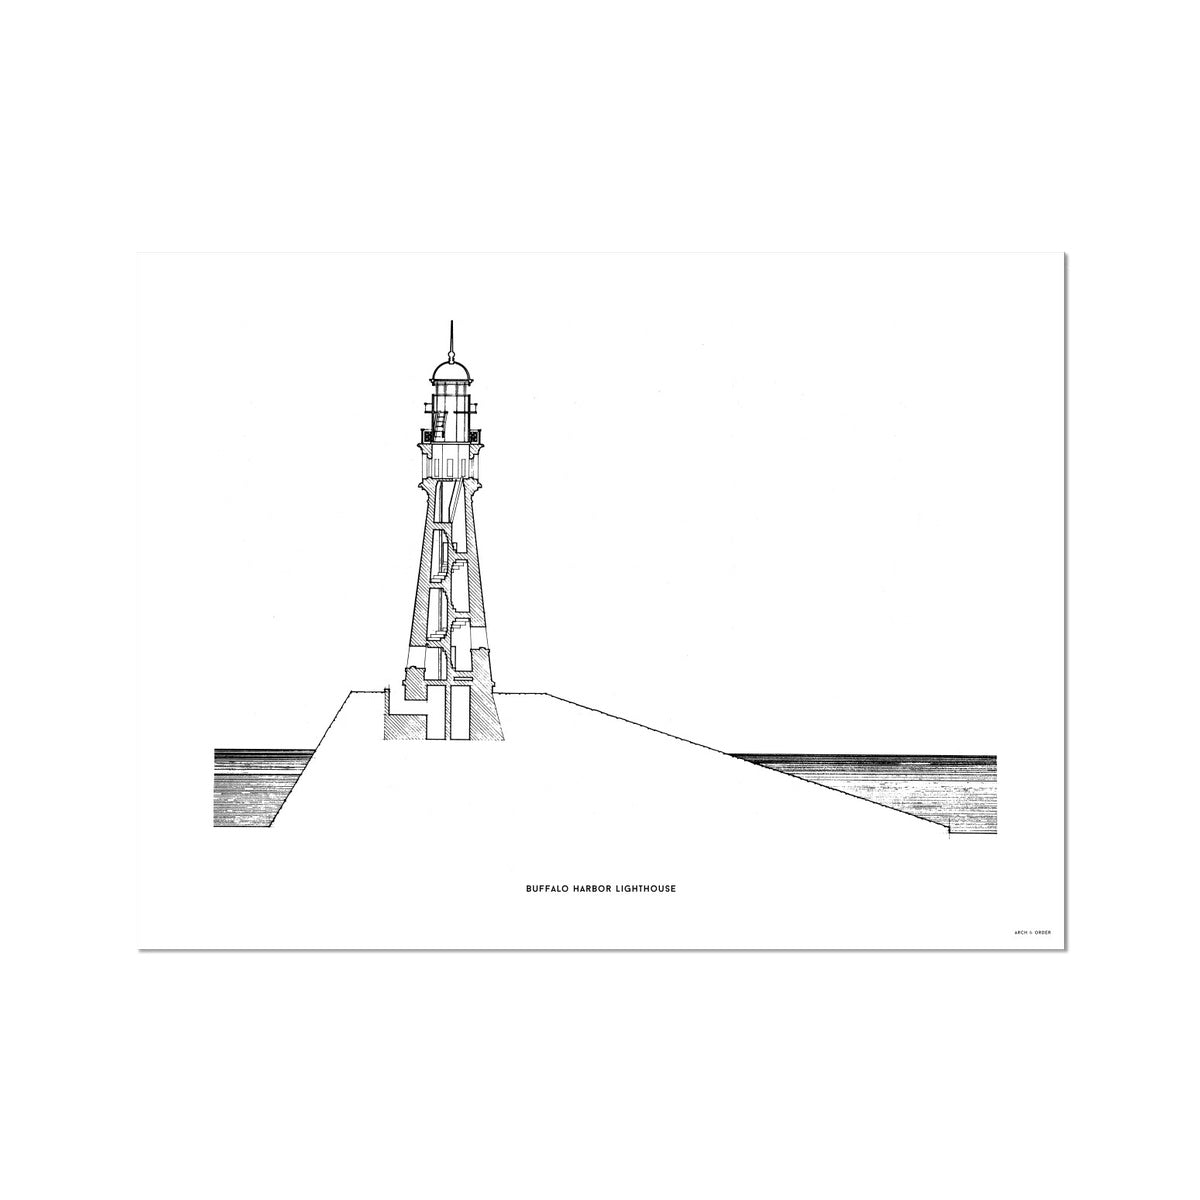 Buffalo Harbor Lighthouse - Cross Section - White -  Etching Paper Print